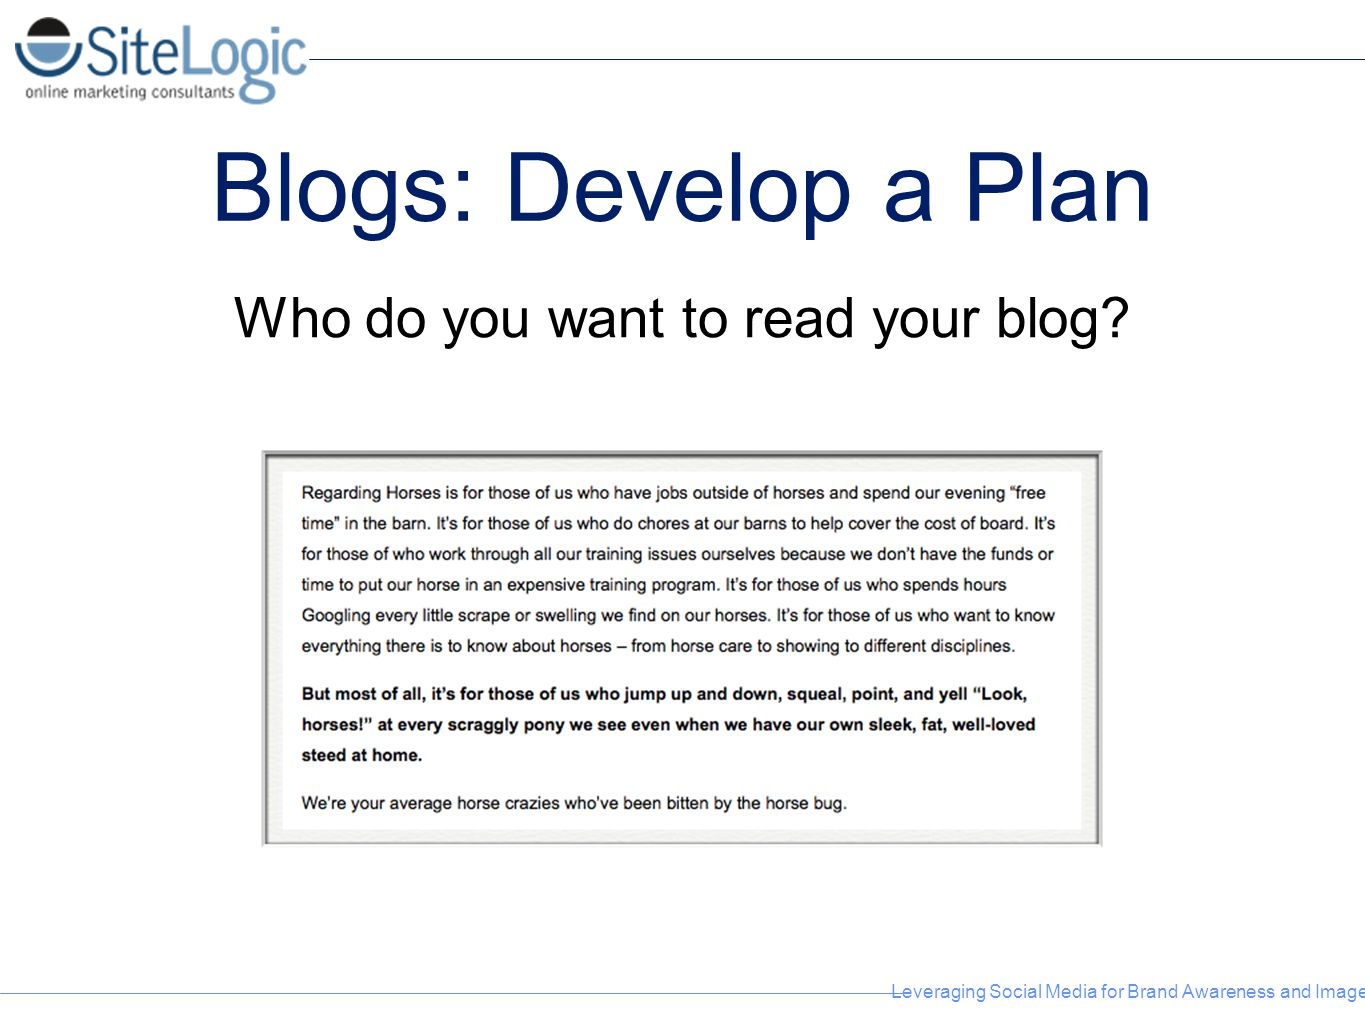 Leveraging Social Media for Brand Awareness and Image Blogs: Develop a Plan Who do you want to read your blog?